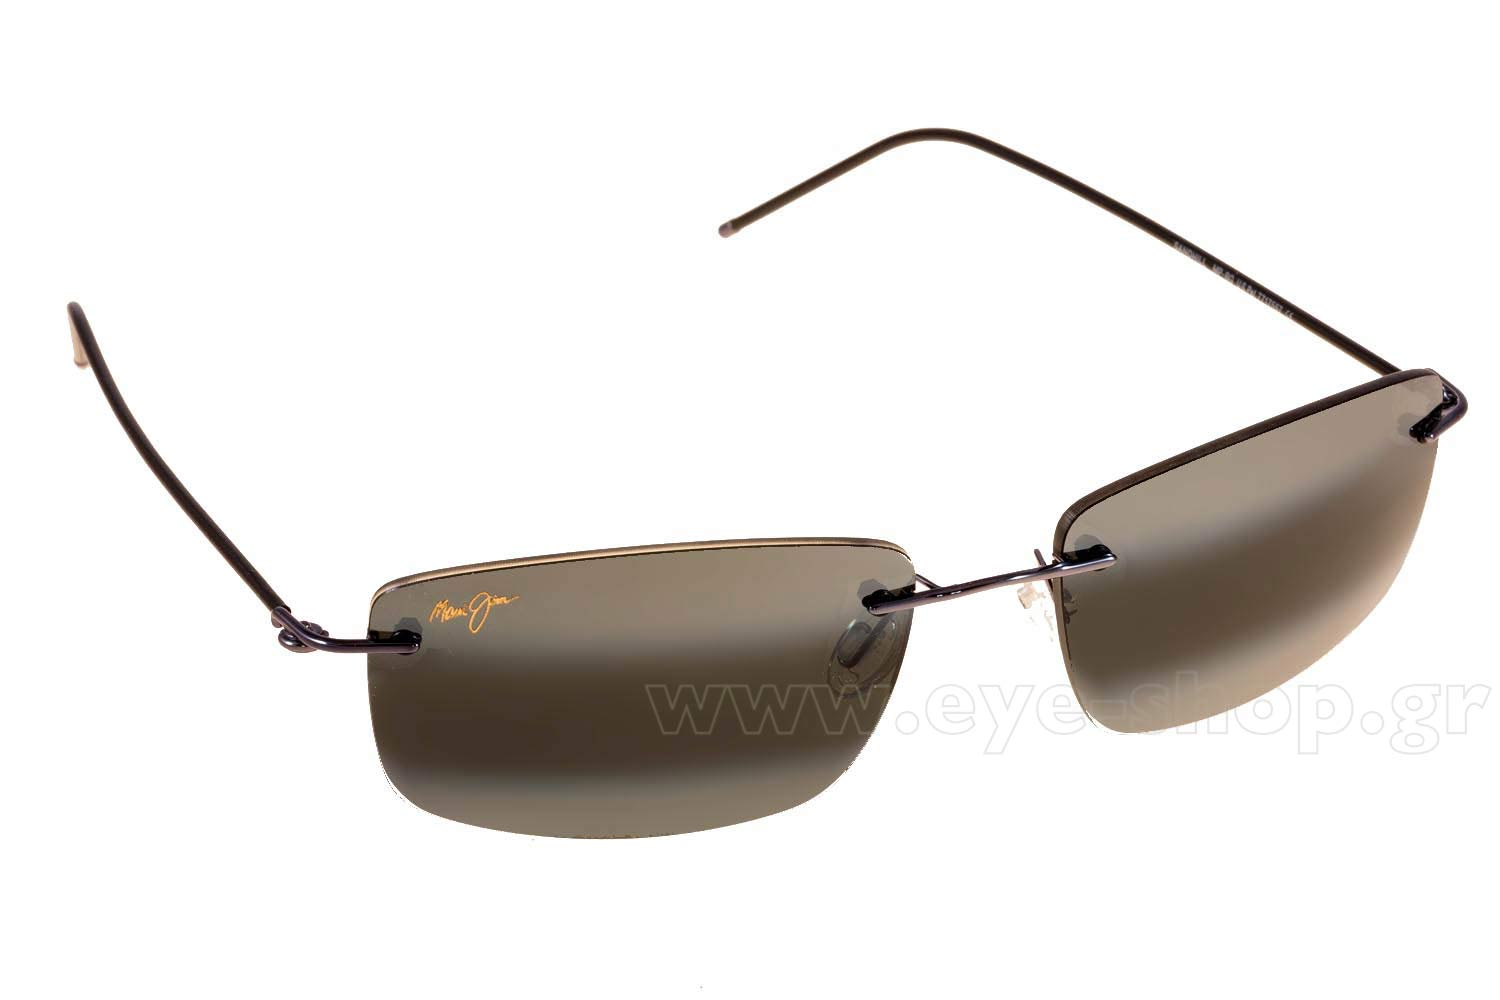 31a1bf3ef0a SUNGLASSES Maui Jim SANDHILL 715-06 - MauiPure Gray double gradient mirror  Polarized Plus2